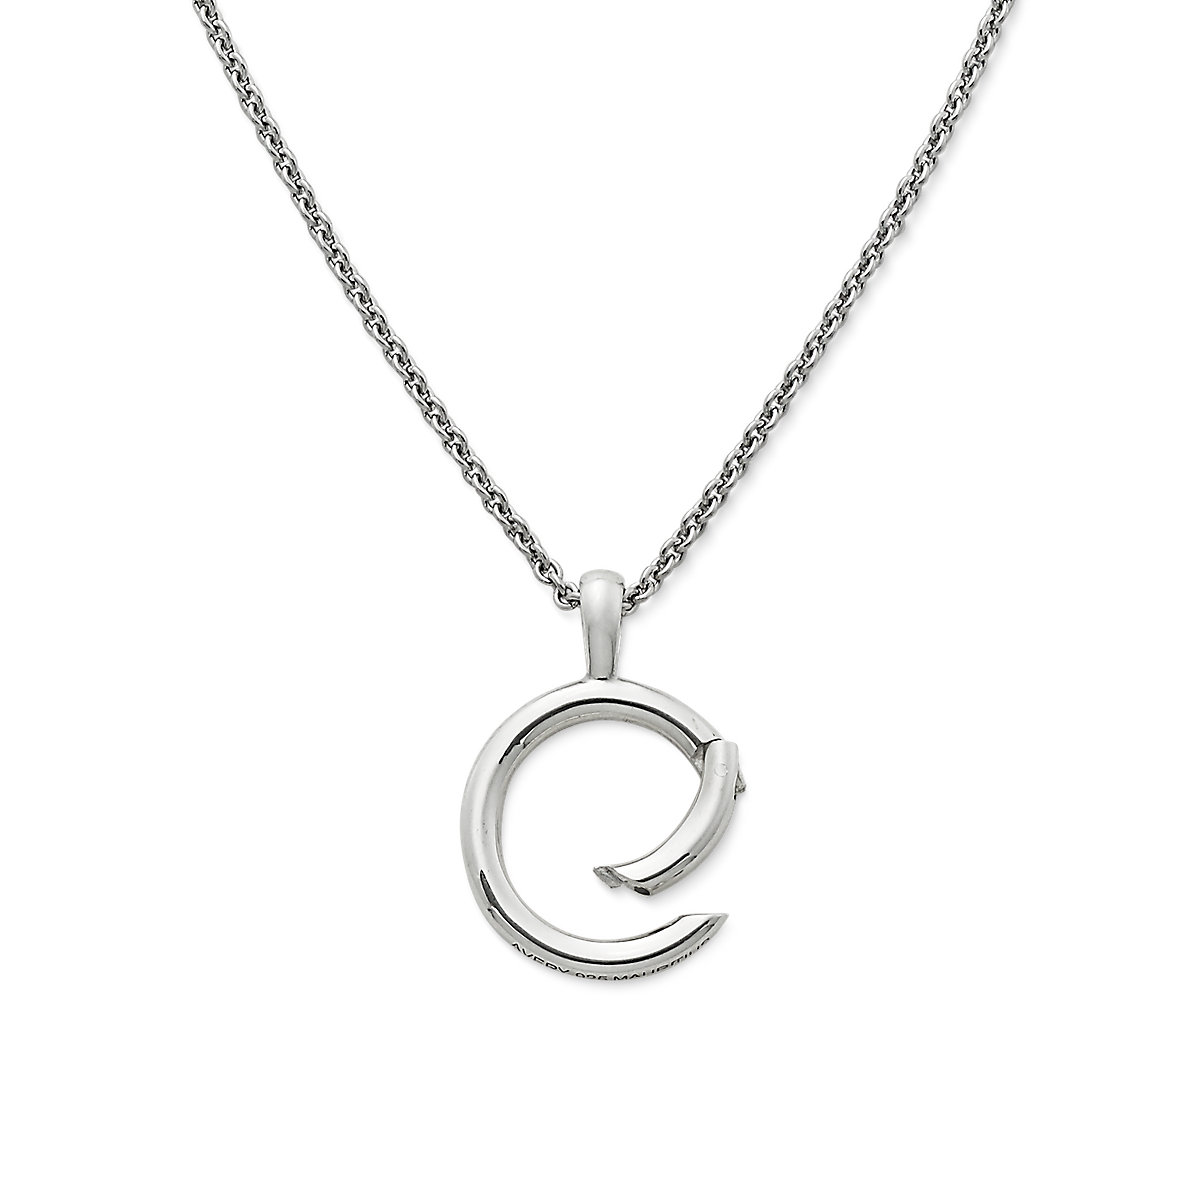 Charm holder necklaces james avery circlet charm holder necklace aloadofball Gallery